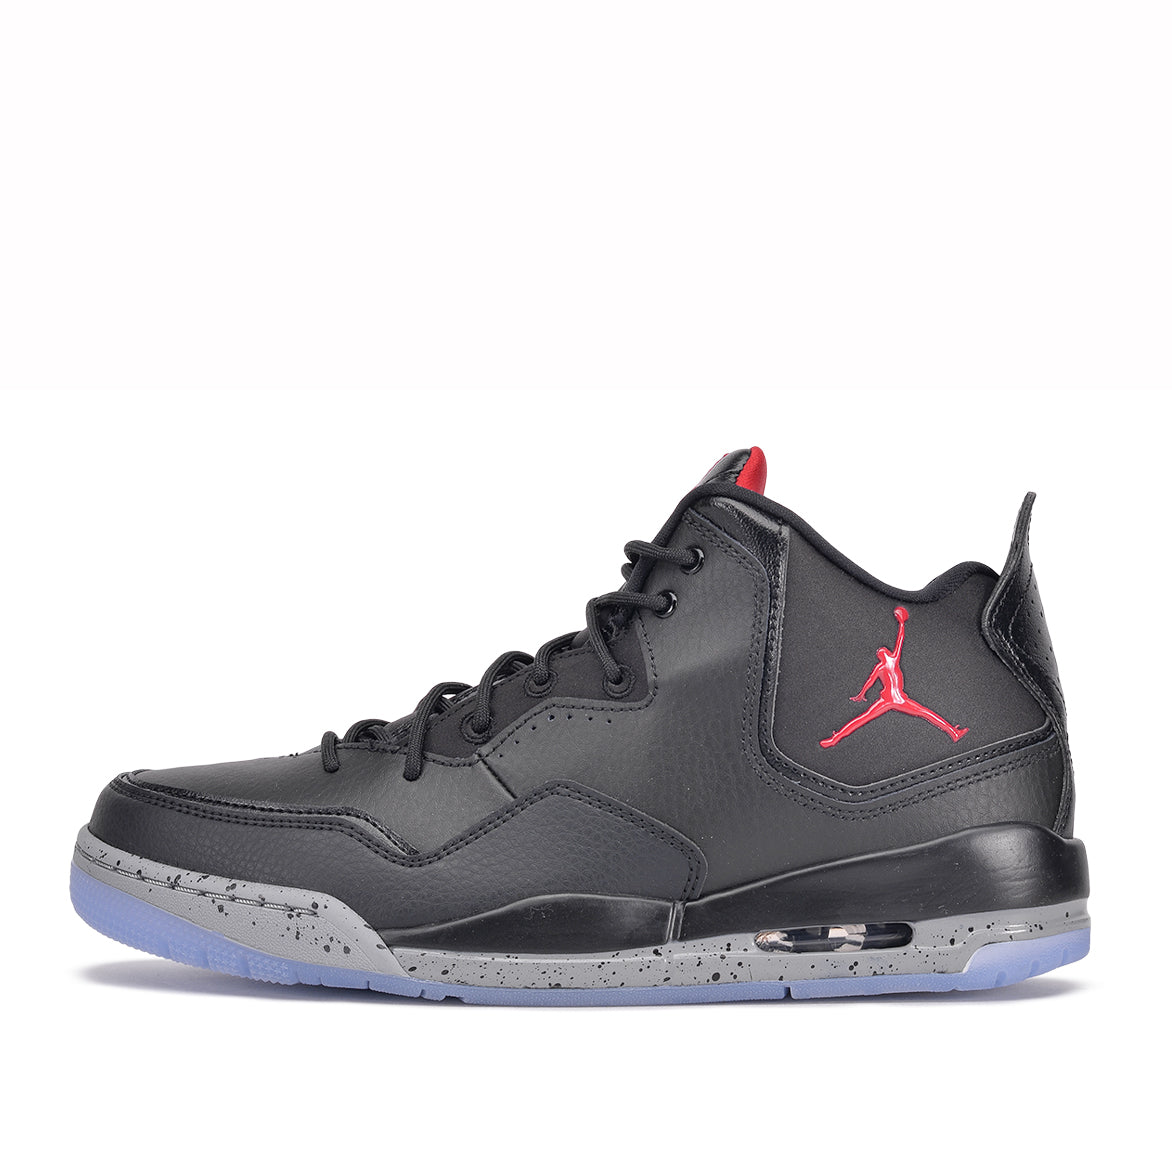 "JORDAN COURTSIDE 23 ""BRED"""